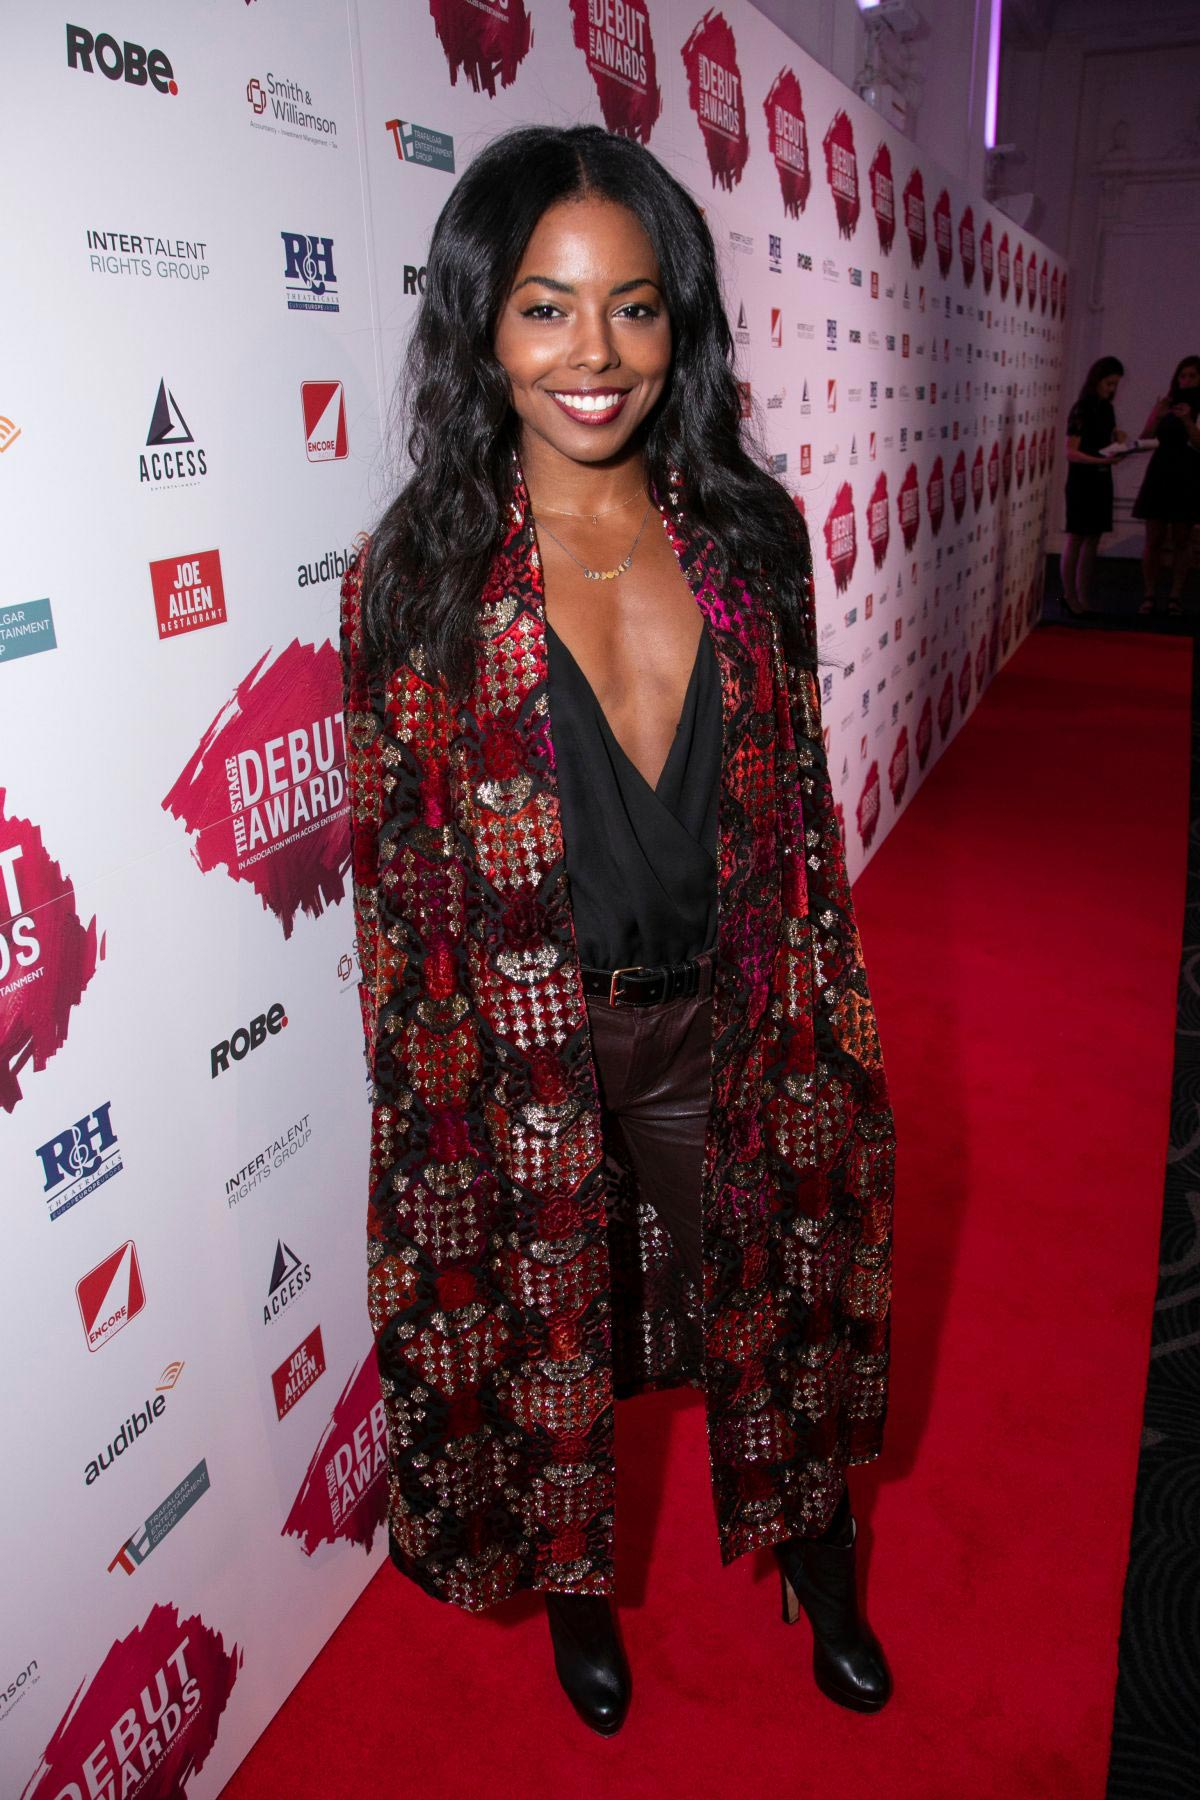 Adrienne Warren at Stage Debut Awards 2018 Arrivals in London 2018/09/23 1